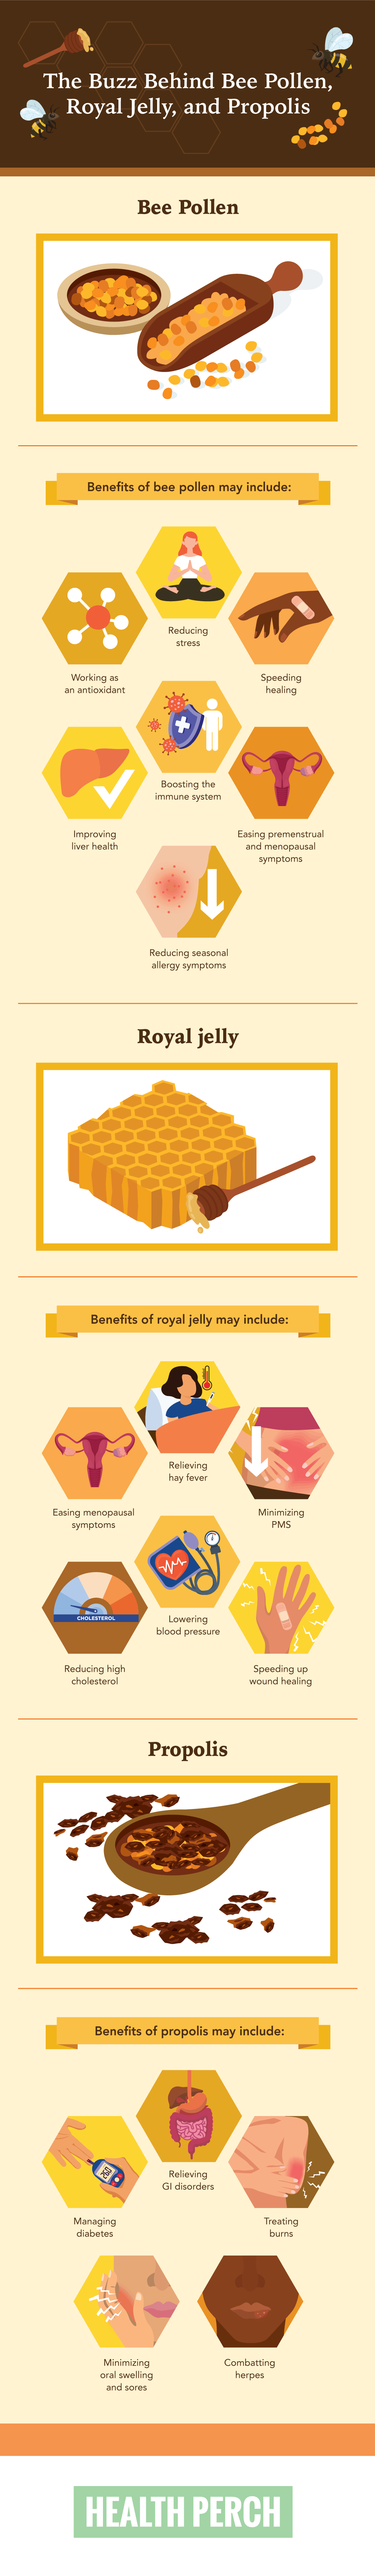 There's More to the Honeybee Than Honey